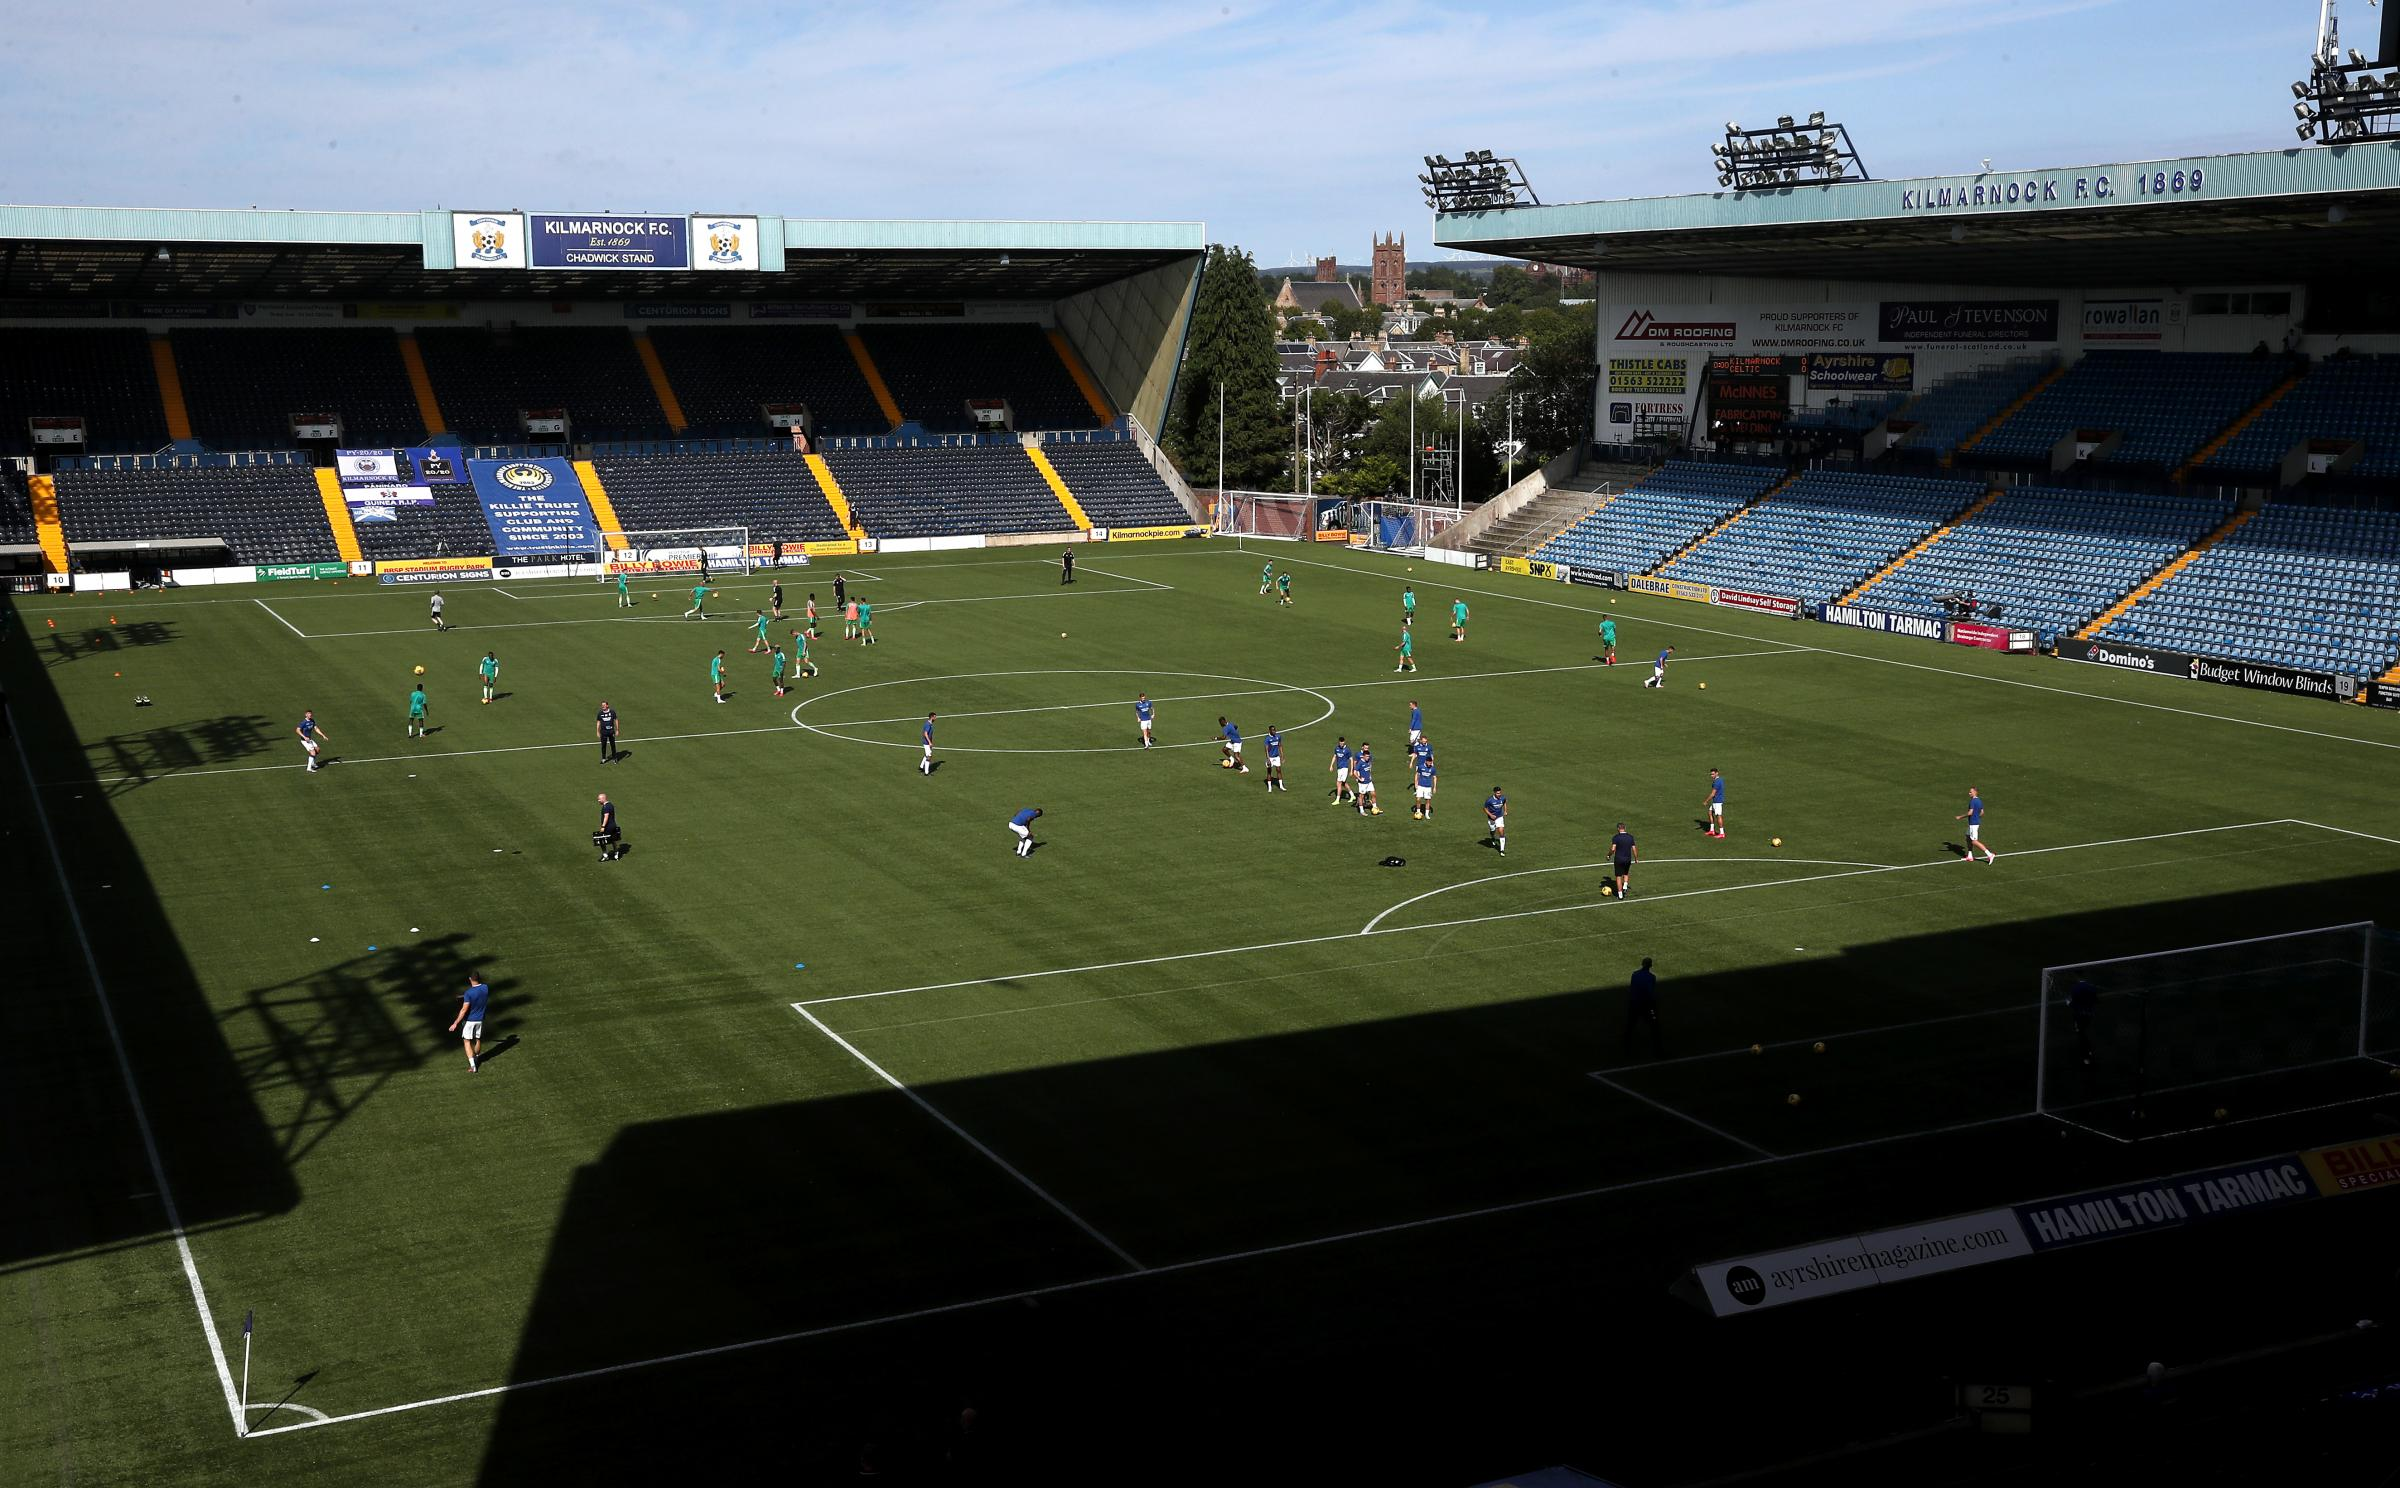 Kilmarnock vs Motherwell in serious doubt as whole Killie squad are forced into self-isolation